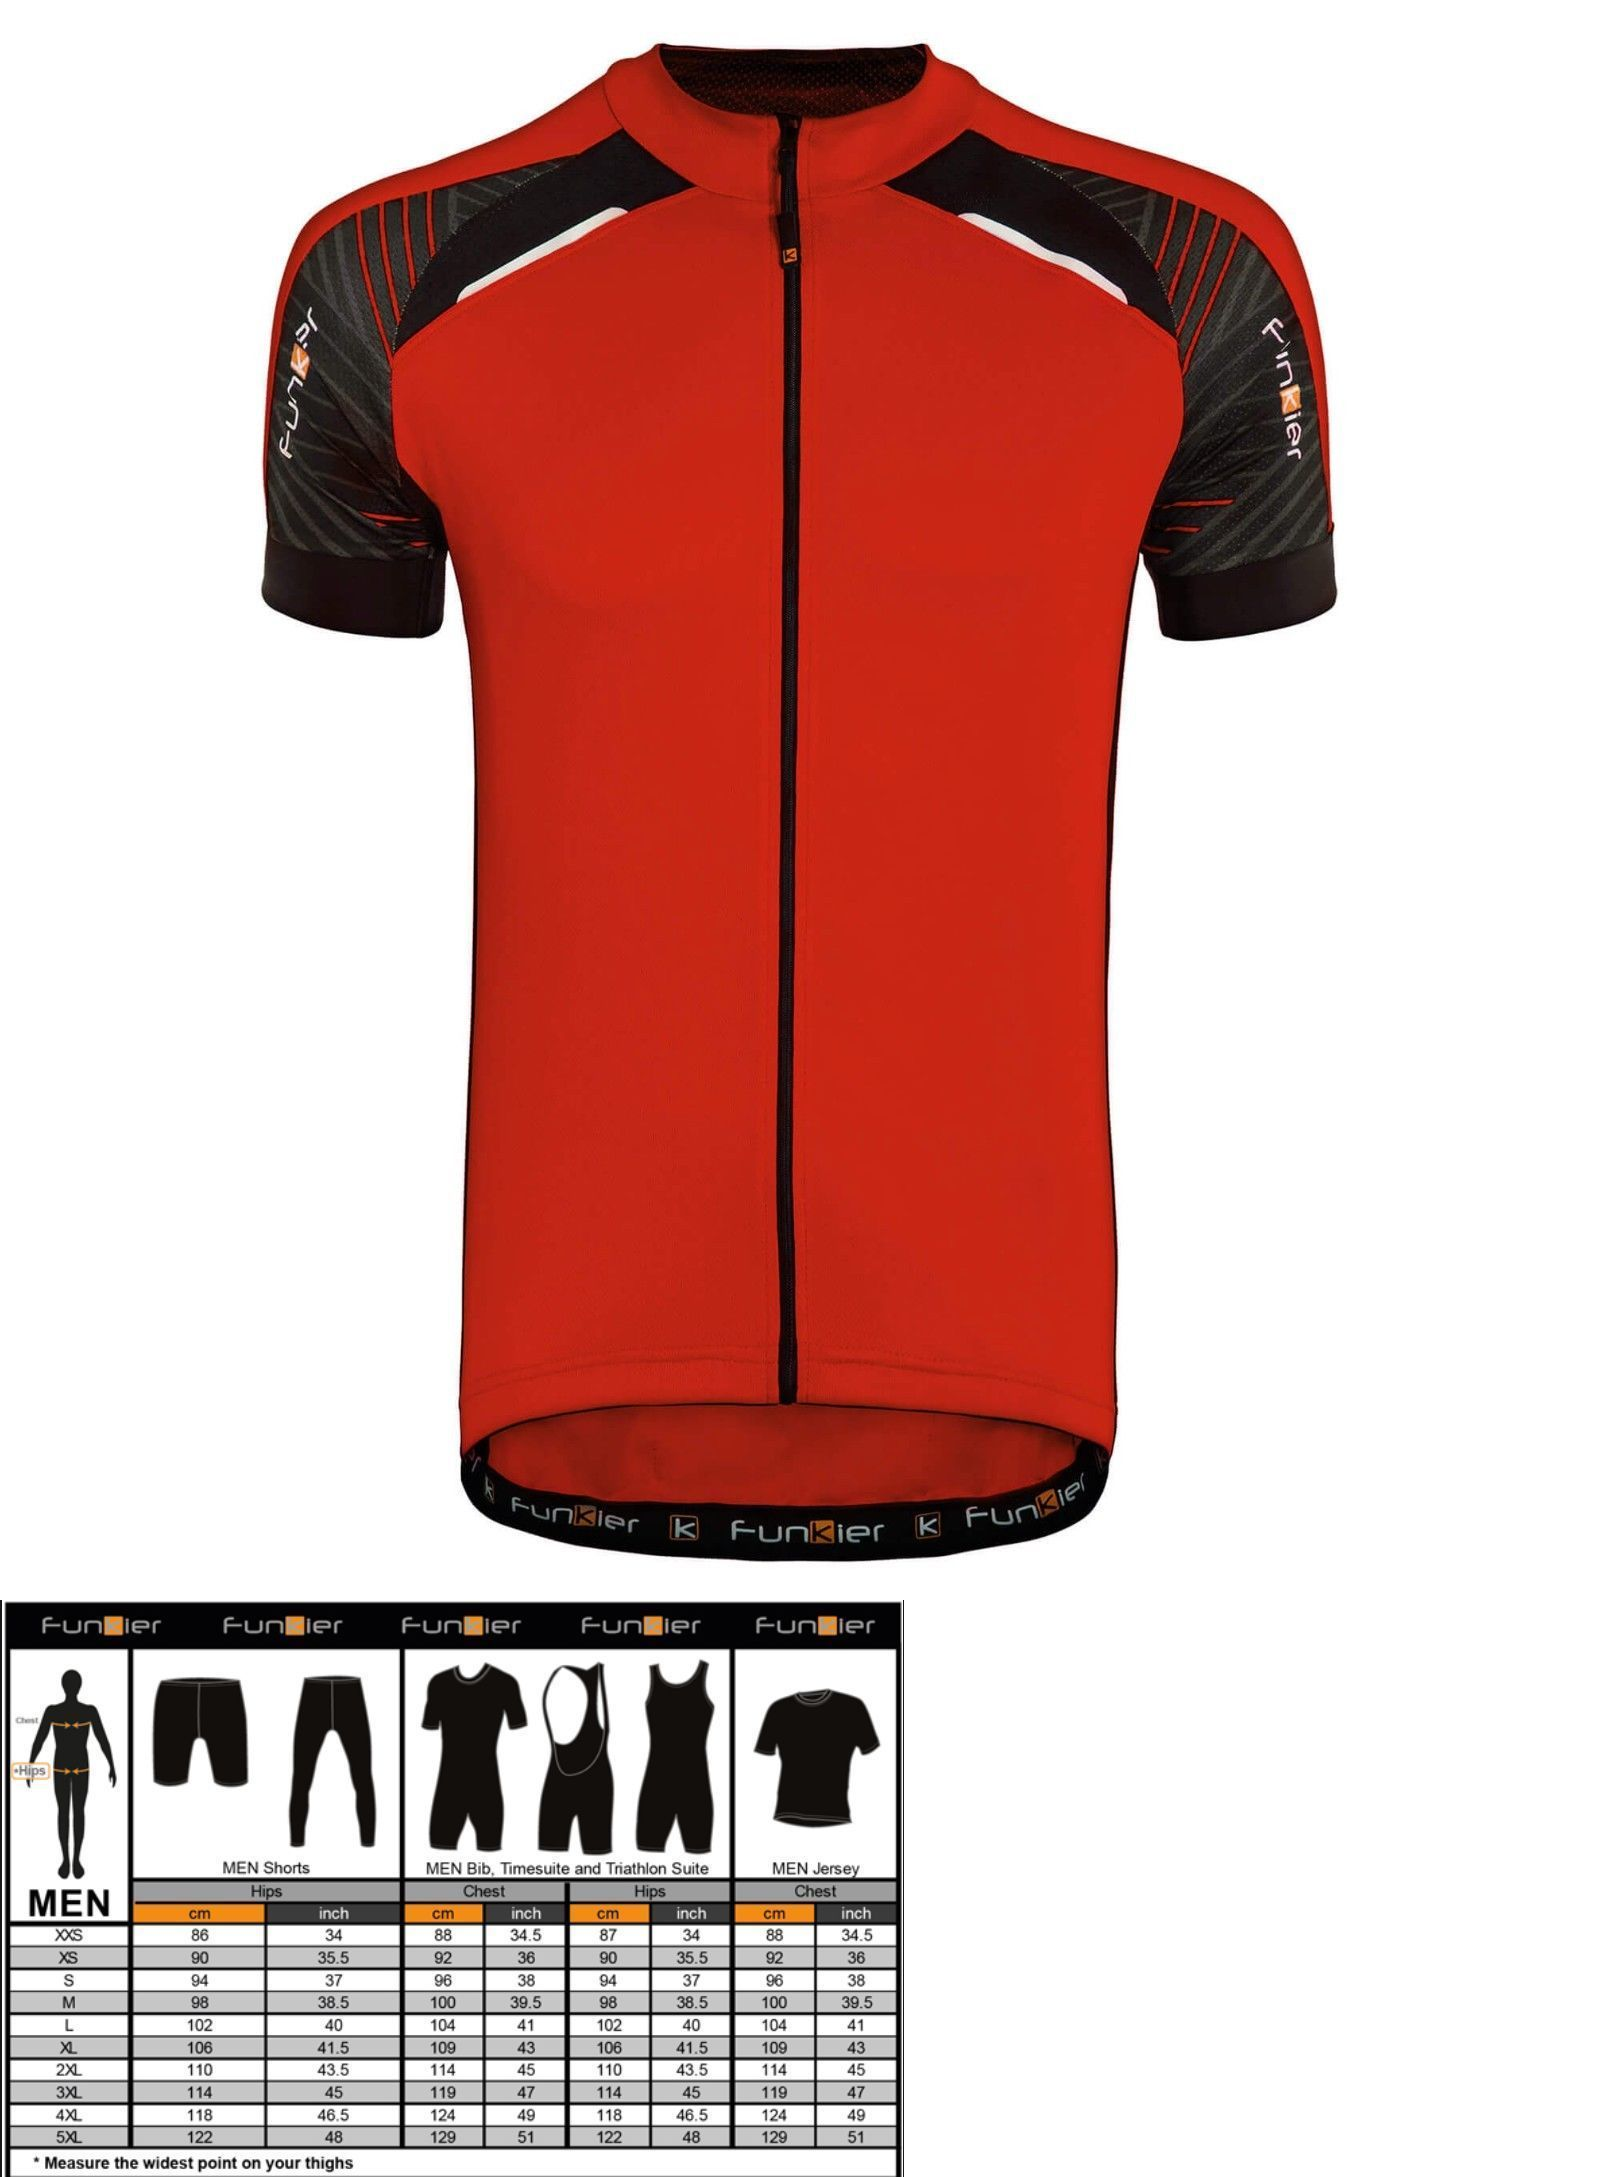 Cycling Clothing 158990  New Funkier Gents Short Sleeve Cycling Jersey Red  J730-5 -  BUY IT NOW ONLY   24.95 on  eBay  cycling  clothing  funkier   gents ... fbca16edd